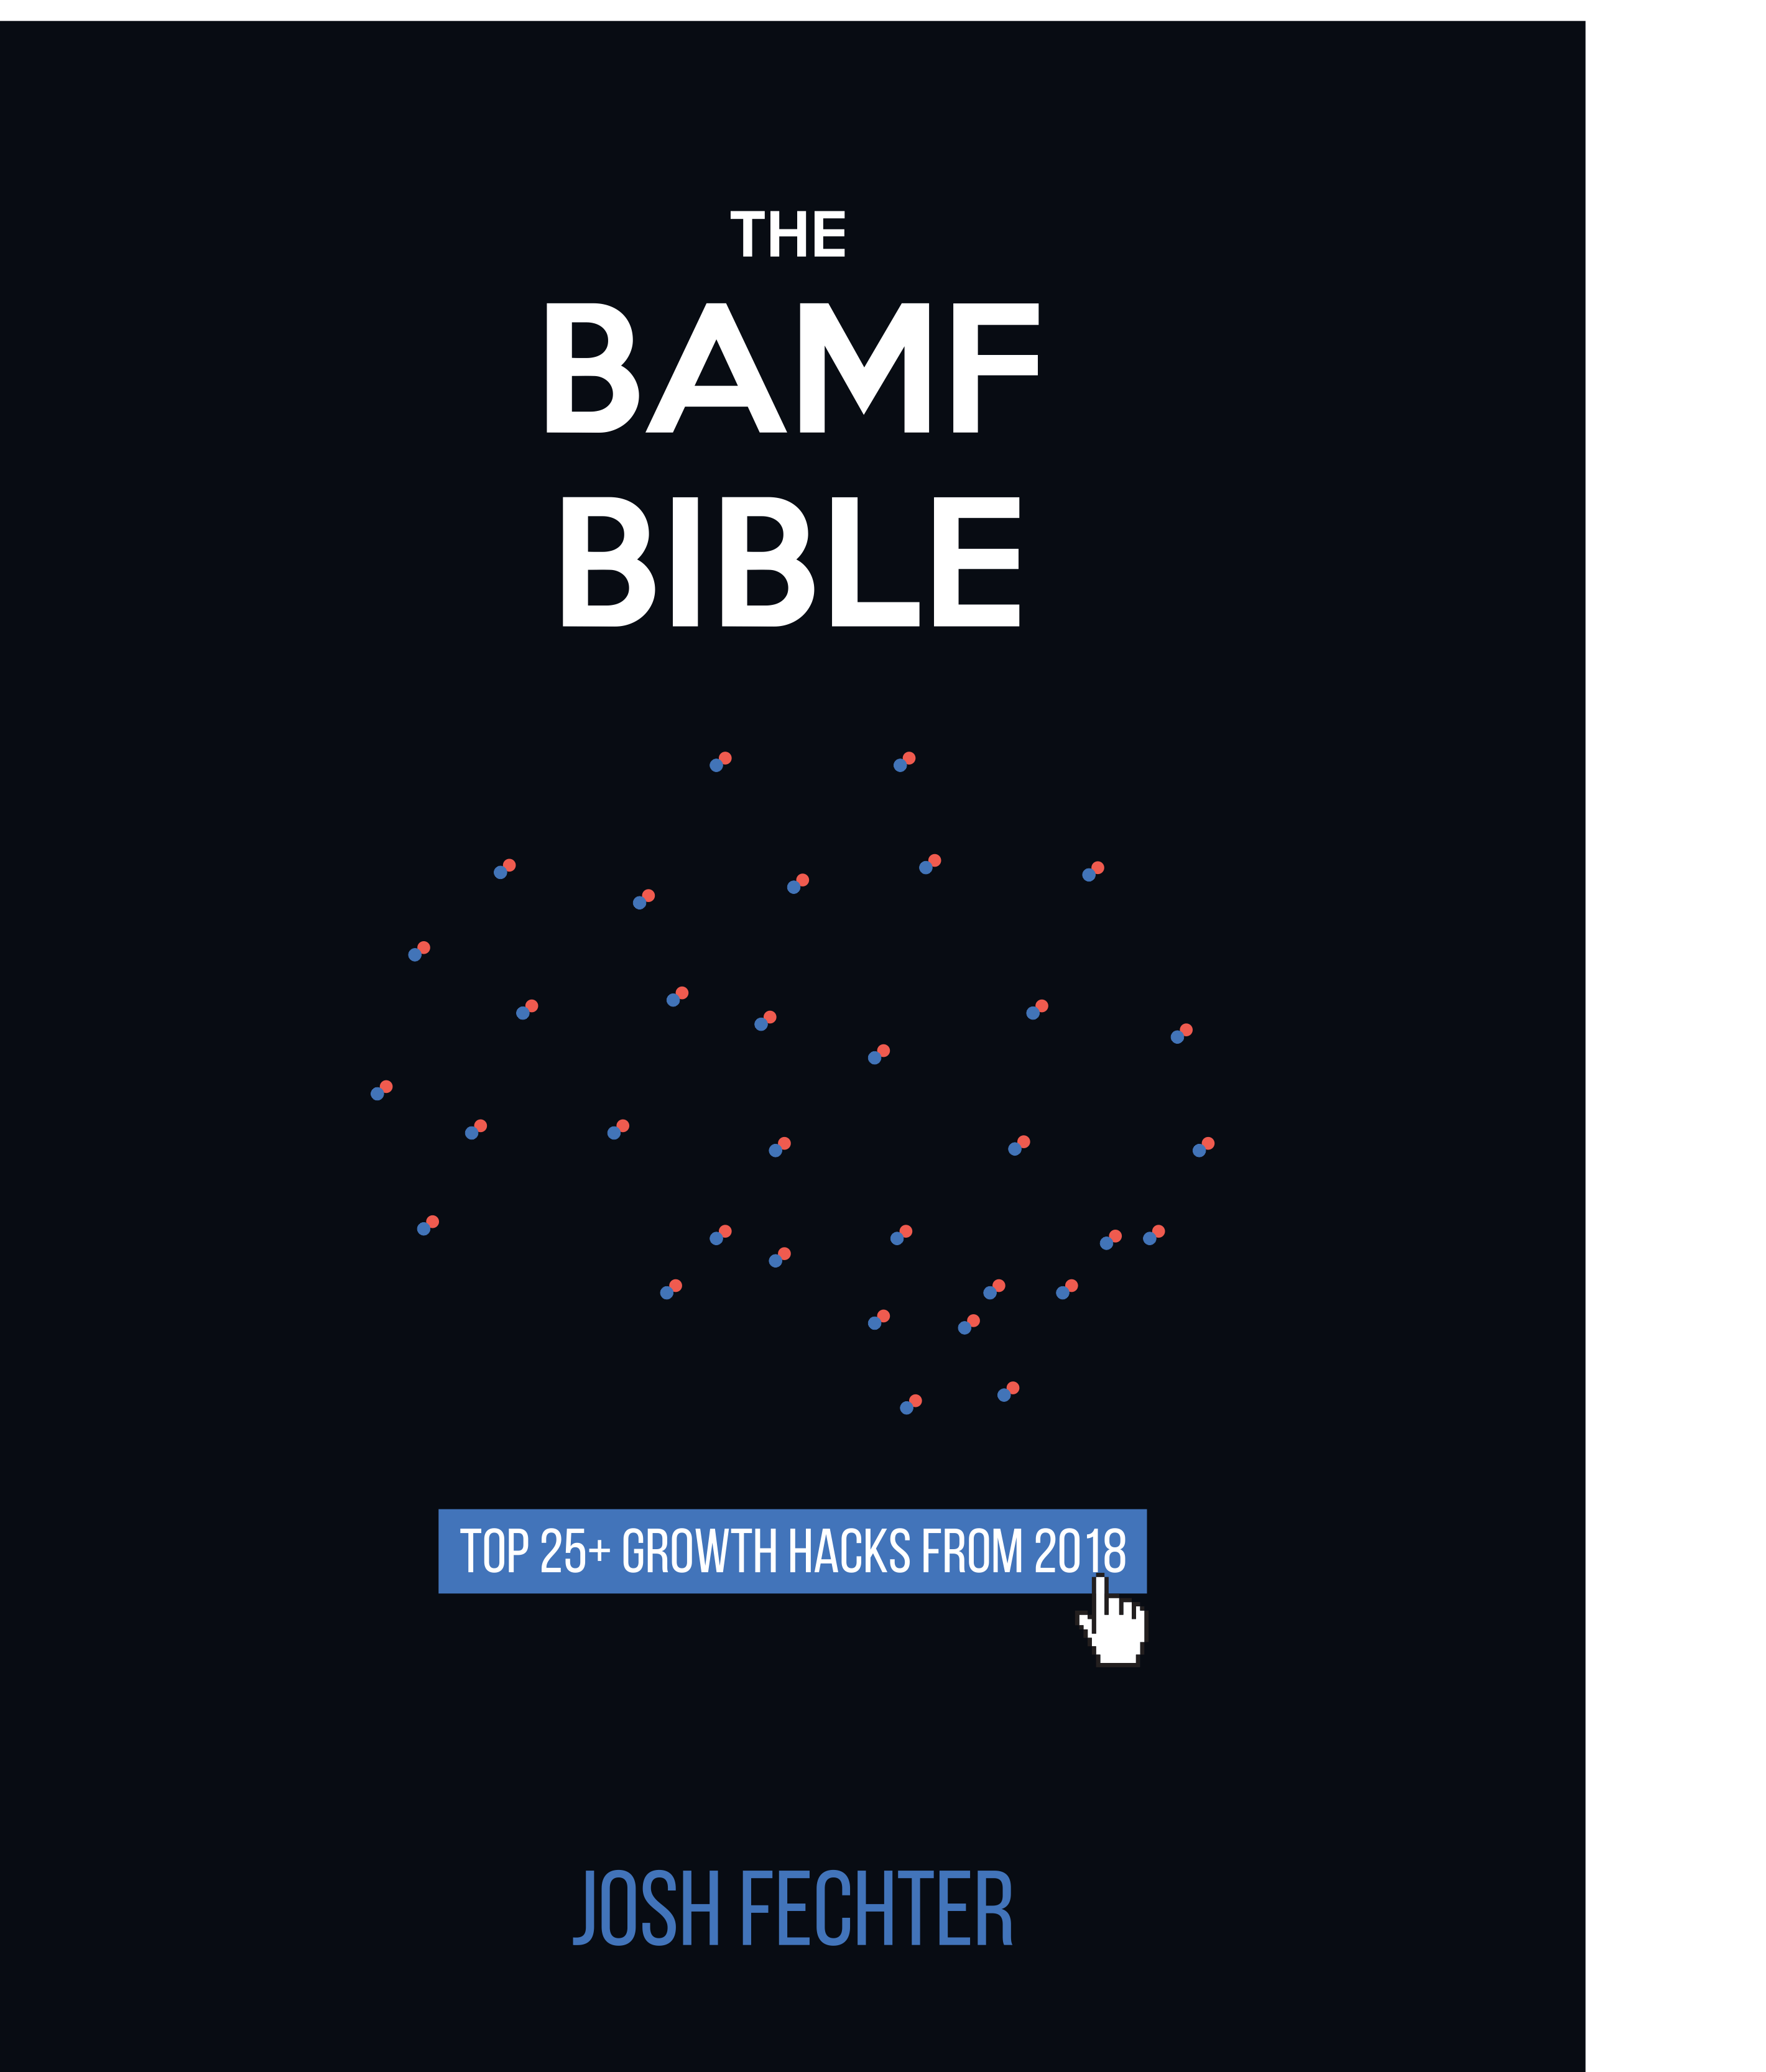 THE BAMF BIBLE 2018